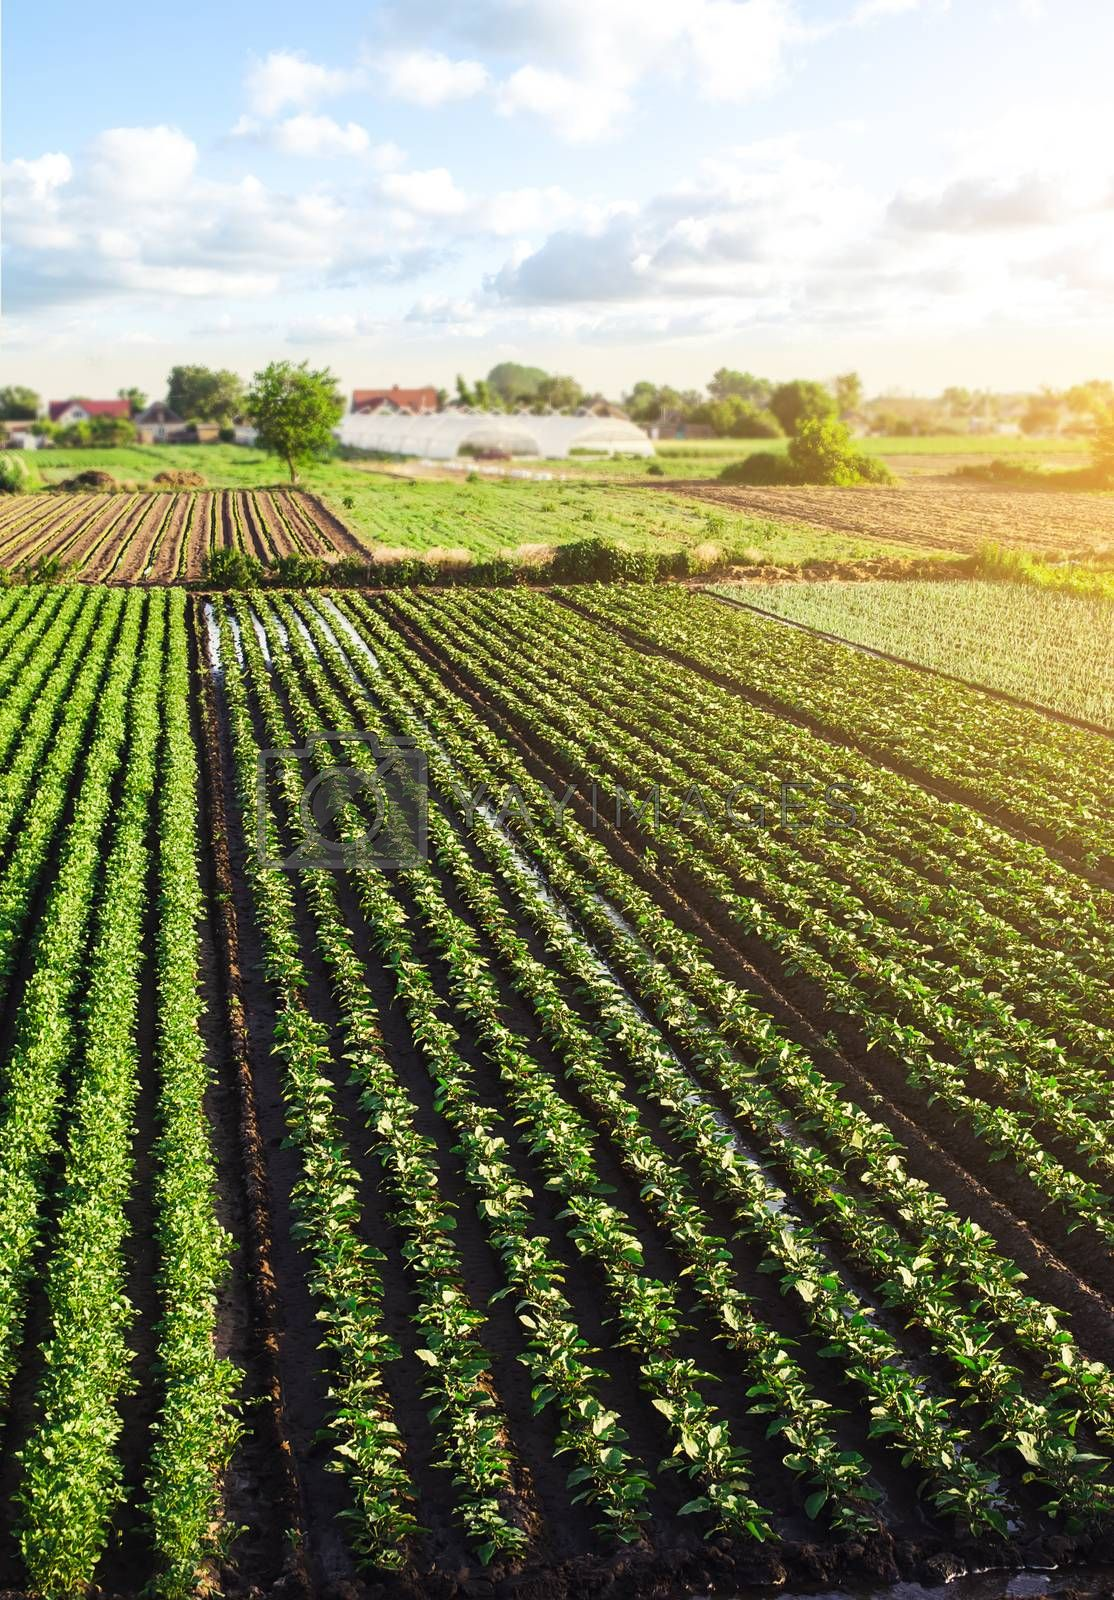 Landscape of green potato bushes plantation. Agroindustry and agribusiness. European organic farming. Growing food on the farm. Growing care and harvesting. Aerial view Beautiful countryside farmland. by iLixe48